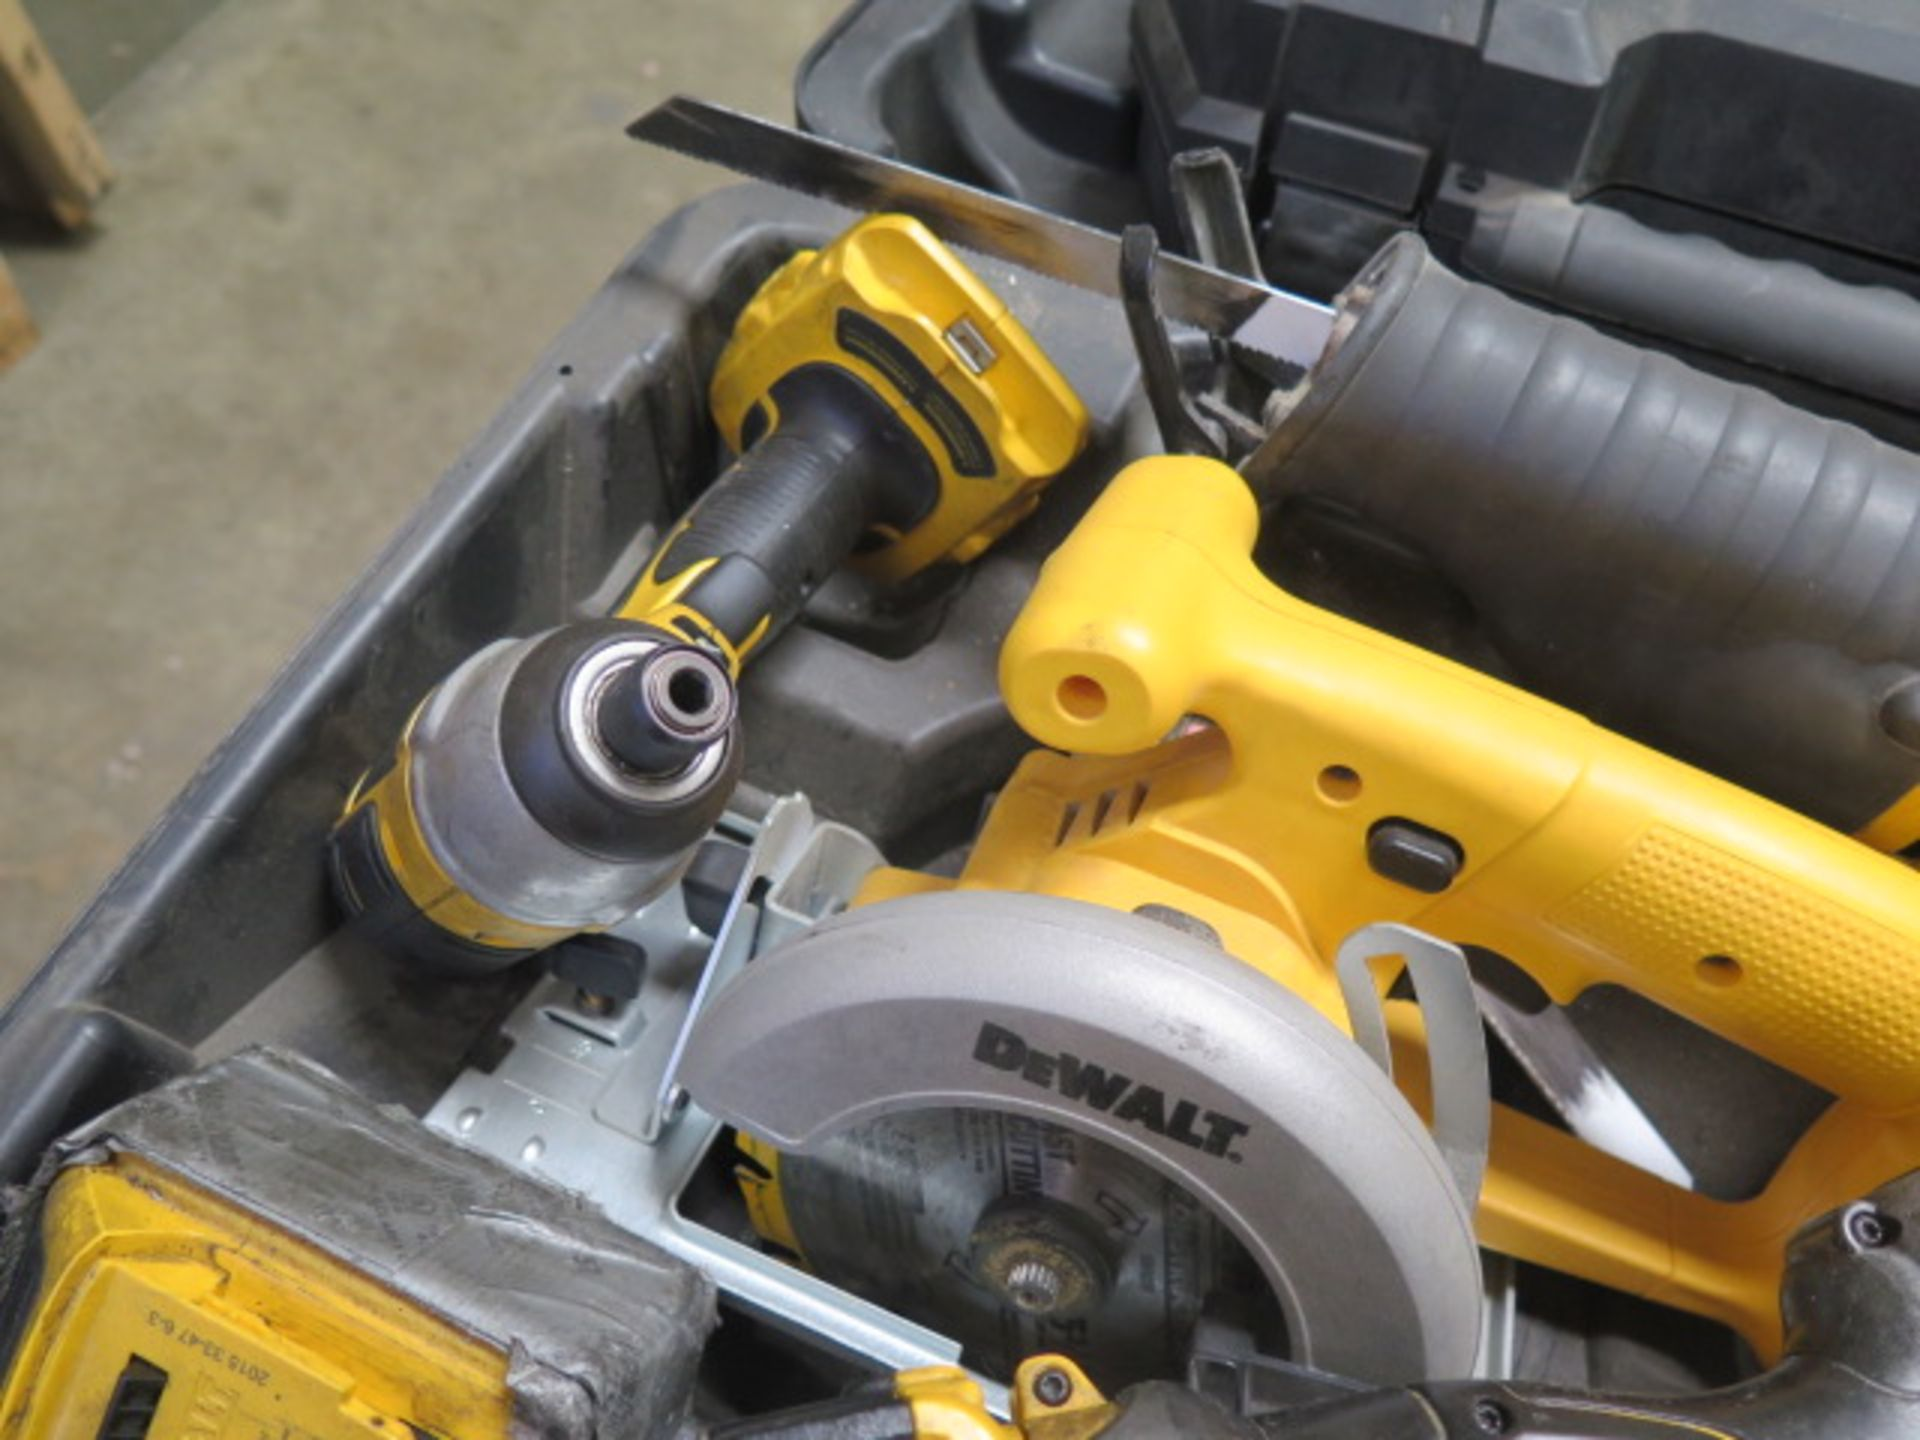 DeWalt Cordless Tools w/ Charger (SOLD AS-IS - NO WARRANTY) - Image 5 of 9